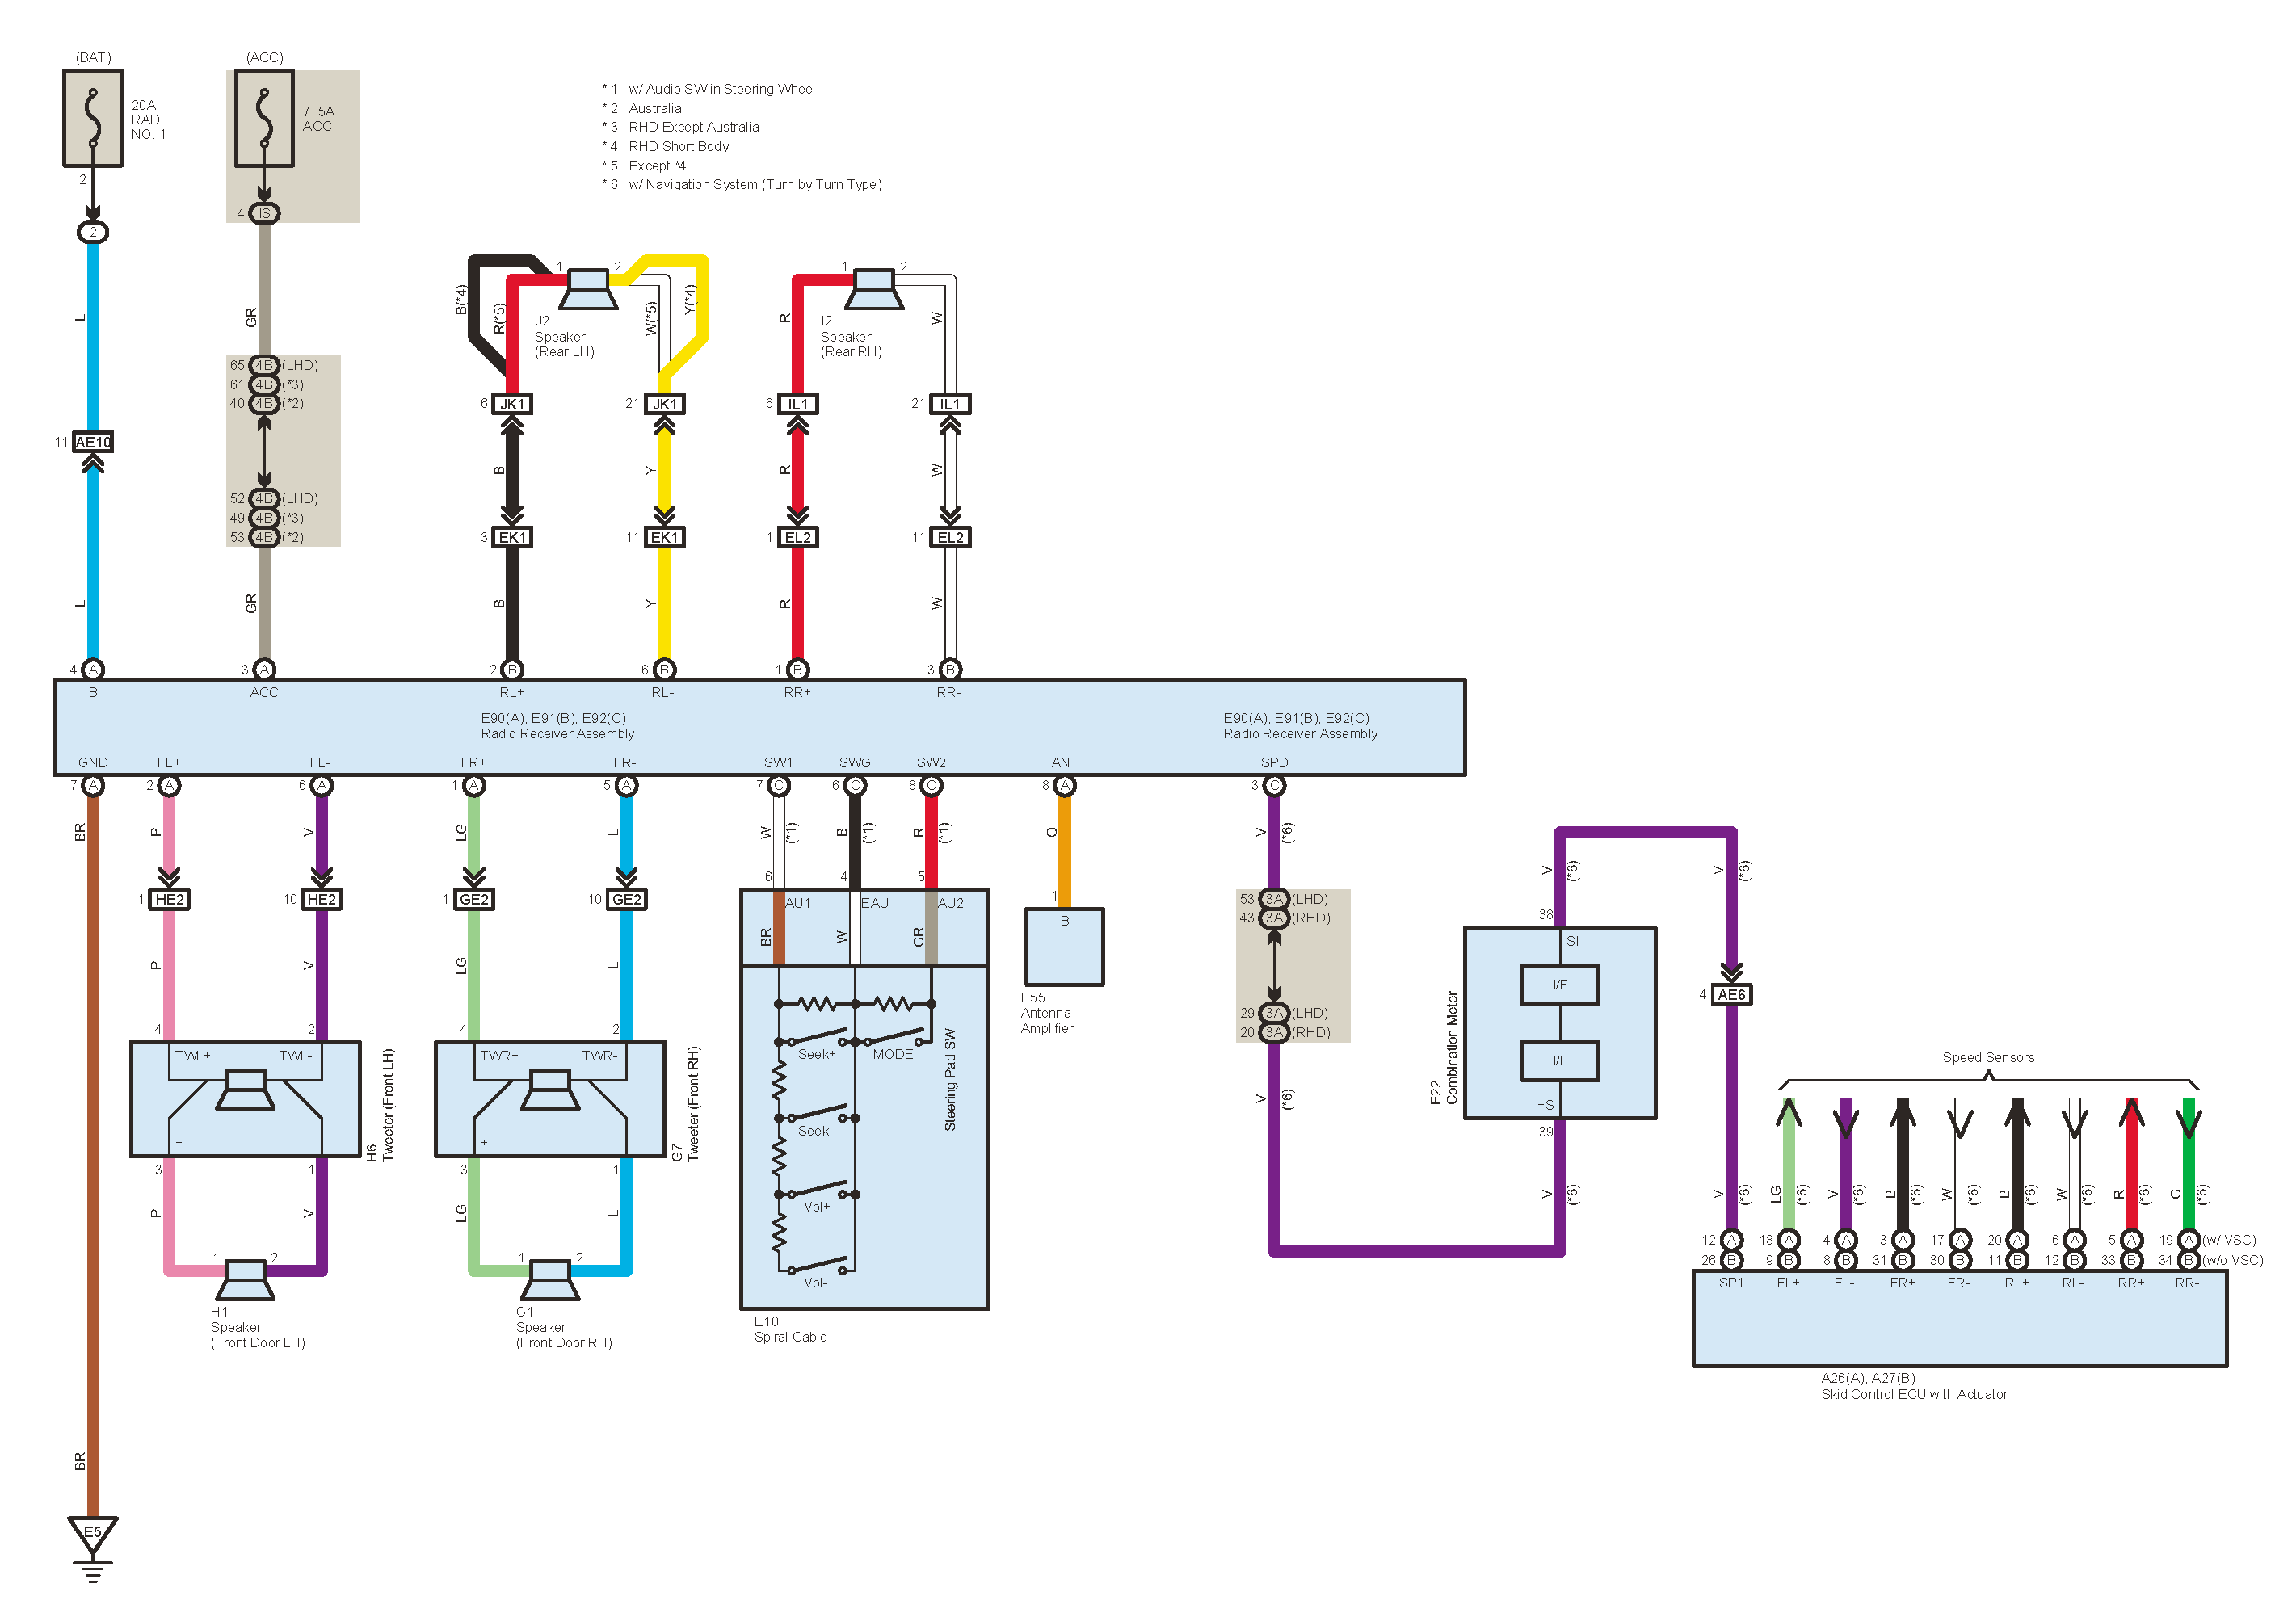 AS toyota rav4 wiring diagram porsche cayenne wiring diagram \u2022 wiring 08 Corolla at readyjetset.co